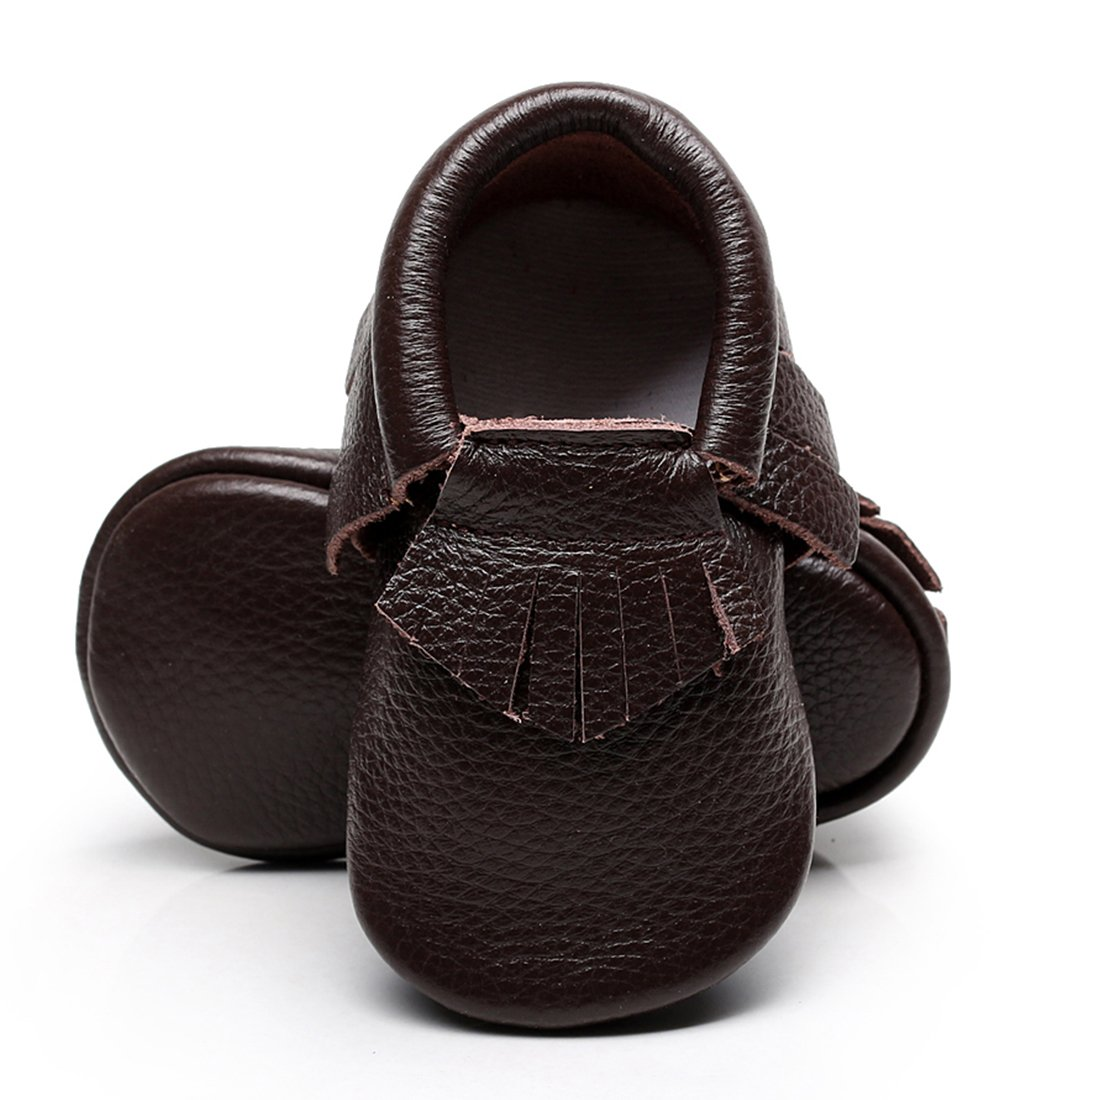 Infant Toddler Moccasins Baby Crib Shoes Soft Leather Sole Tassel Prewalker First Walkers for Boys Girls 0-24 Months WAZZIT